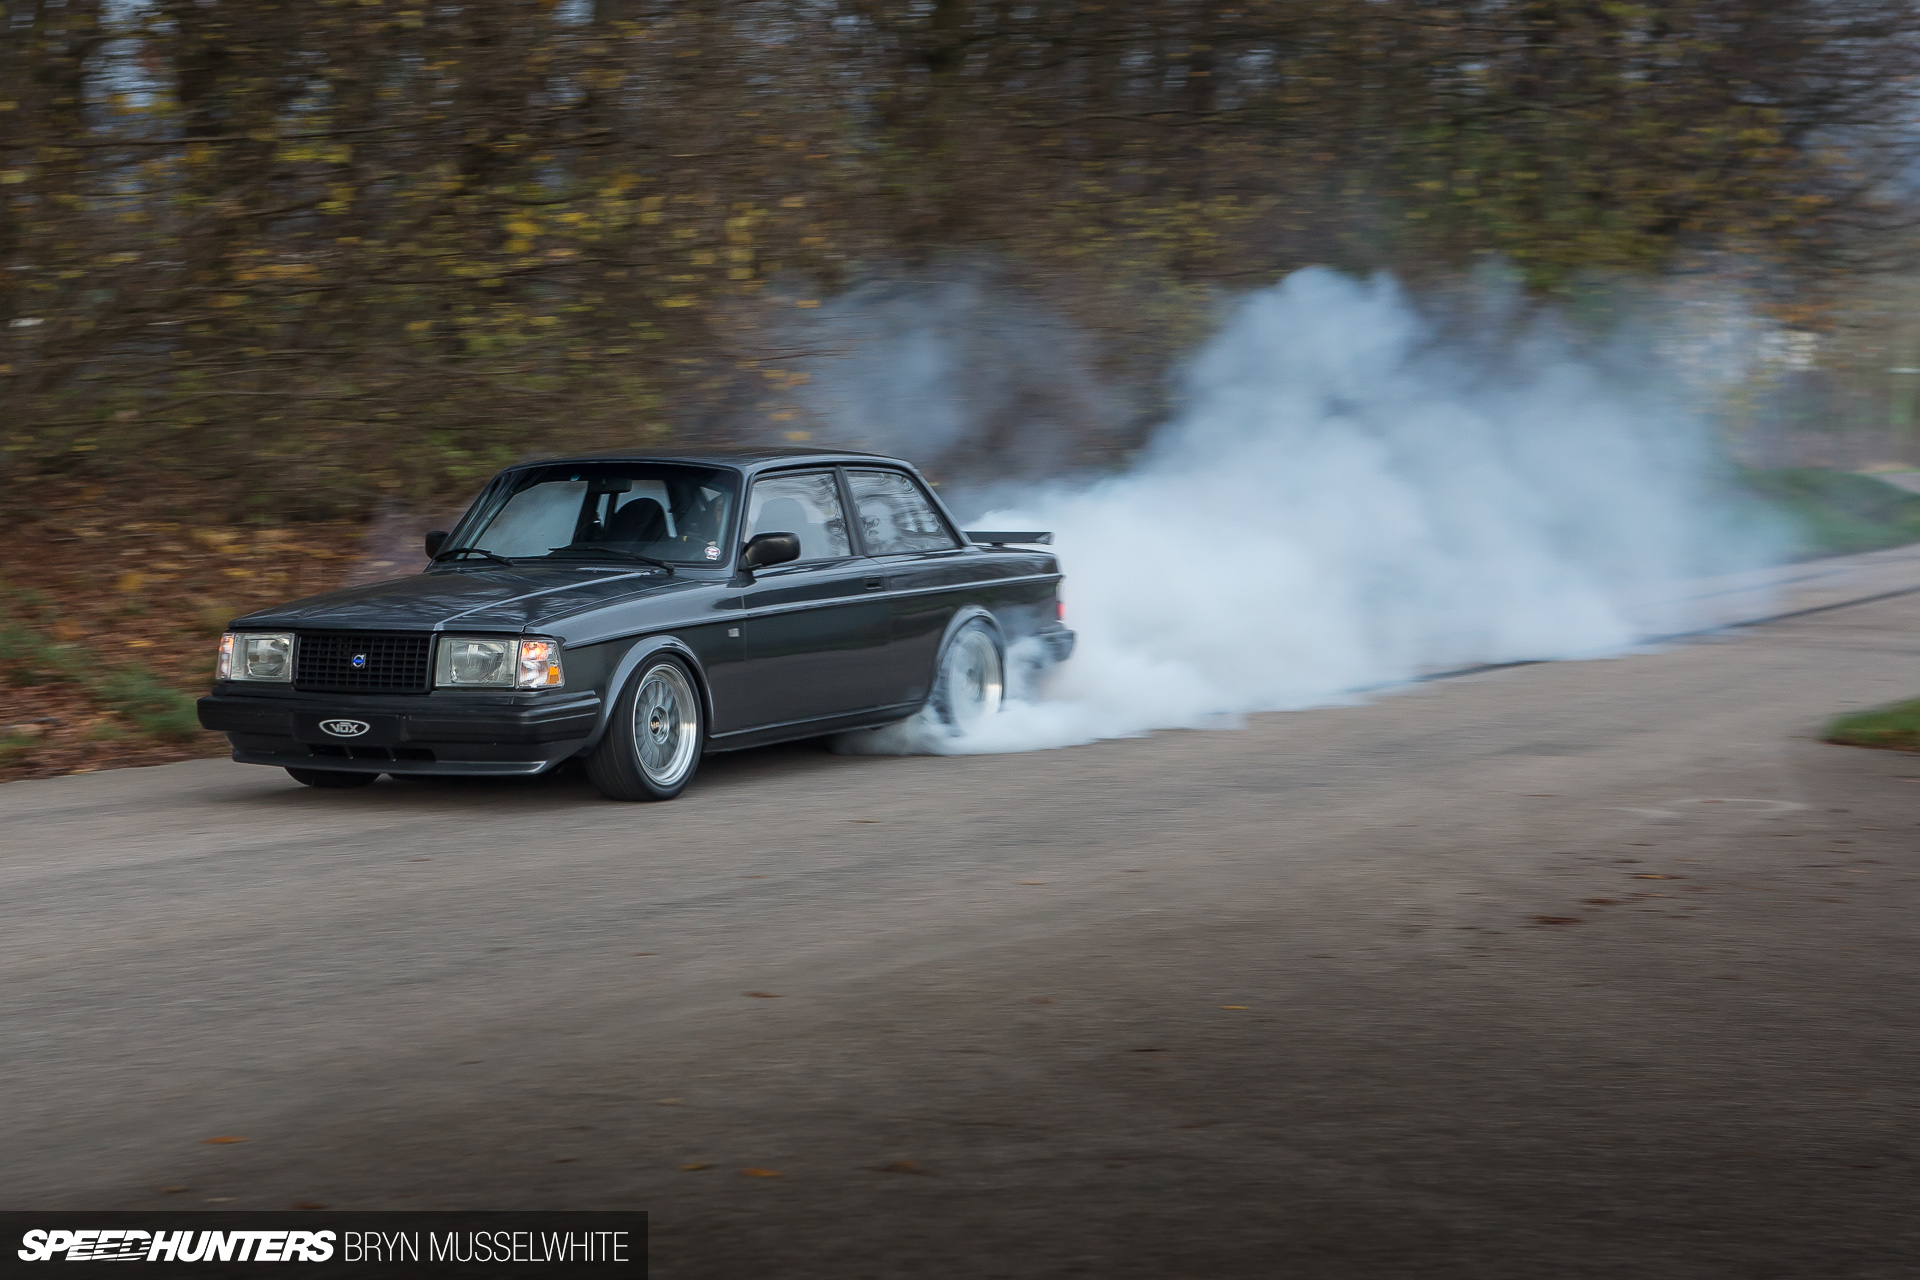 Mattias-Vox-Vocks-Volvo-242-24v-turbo-91